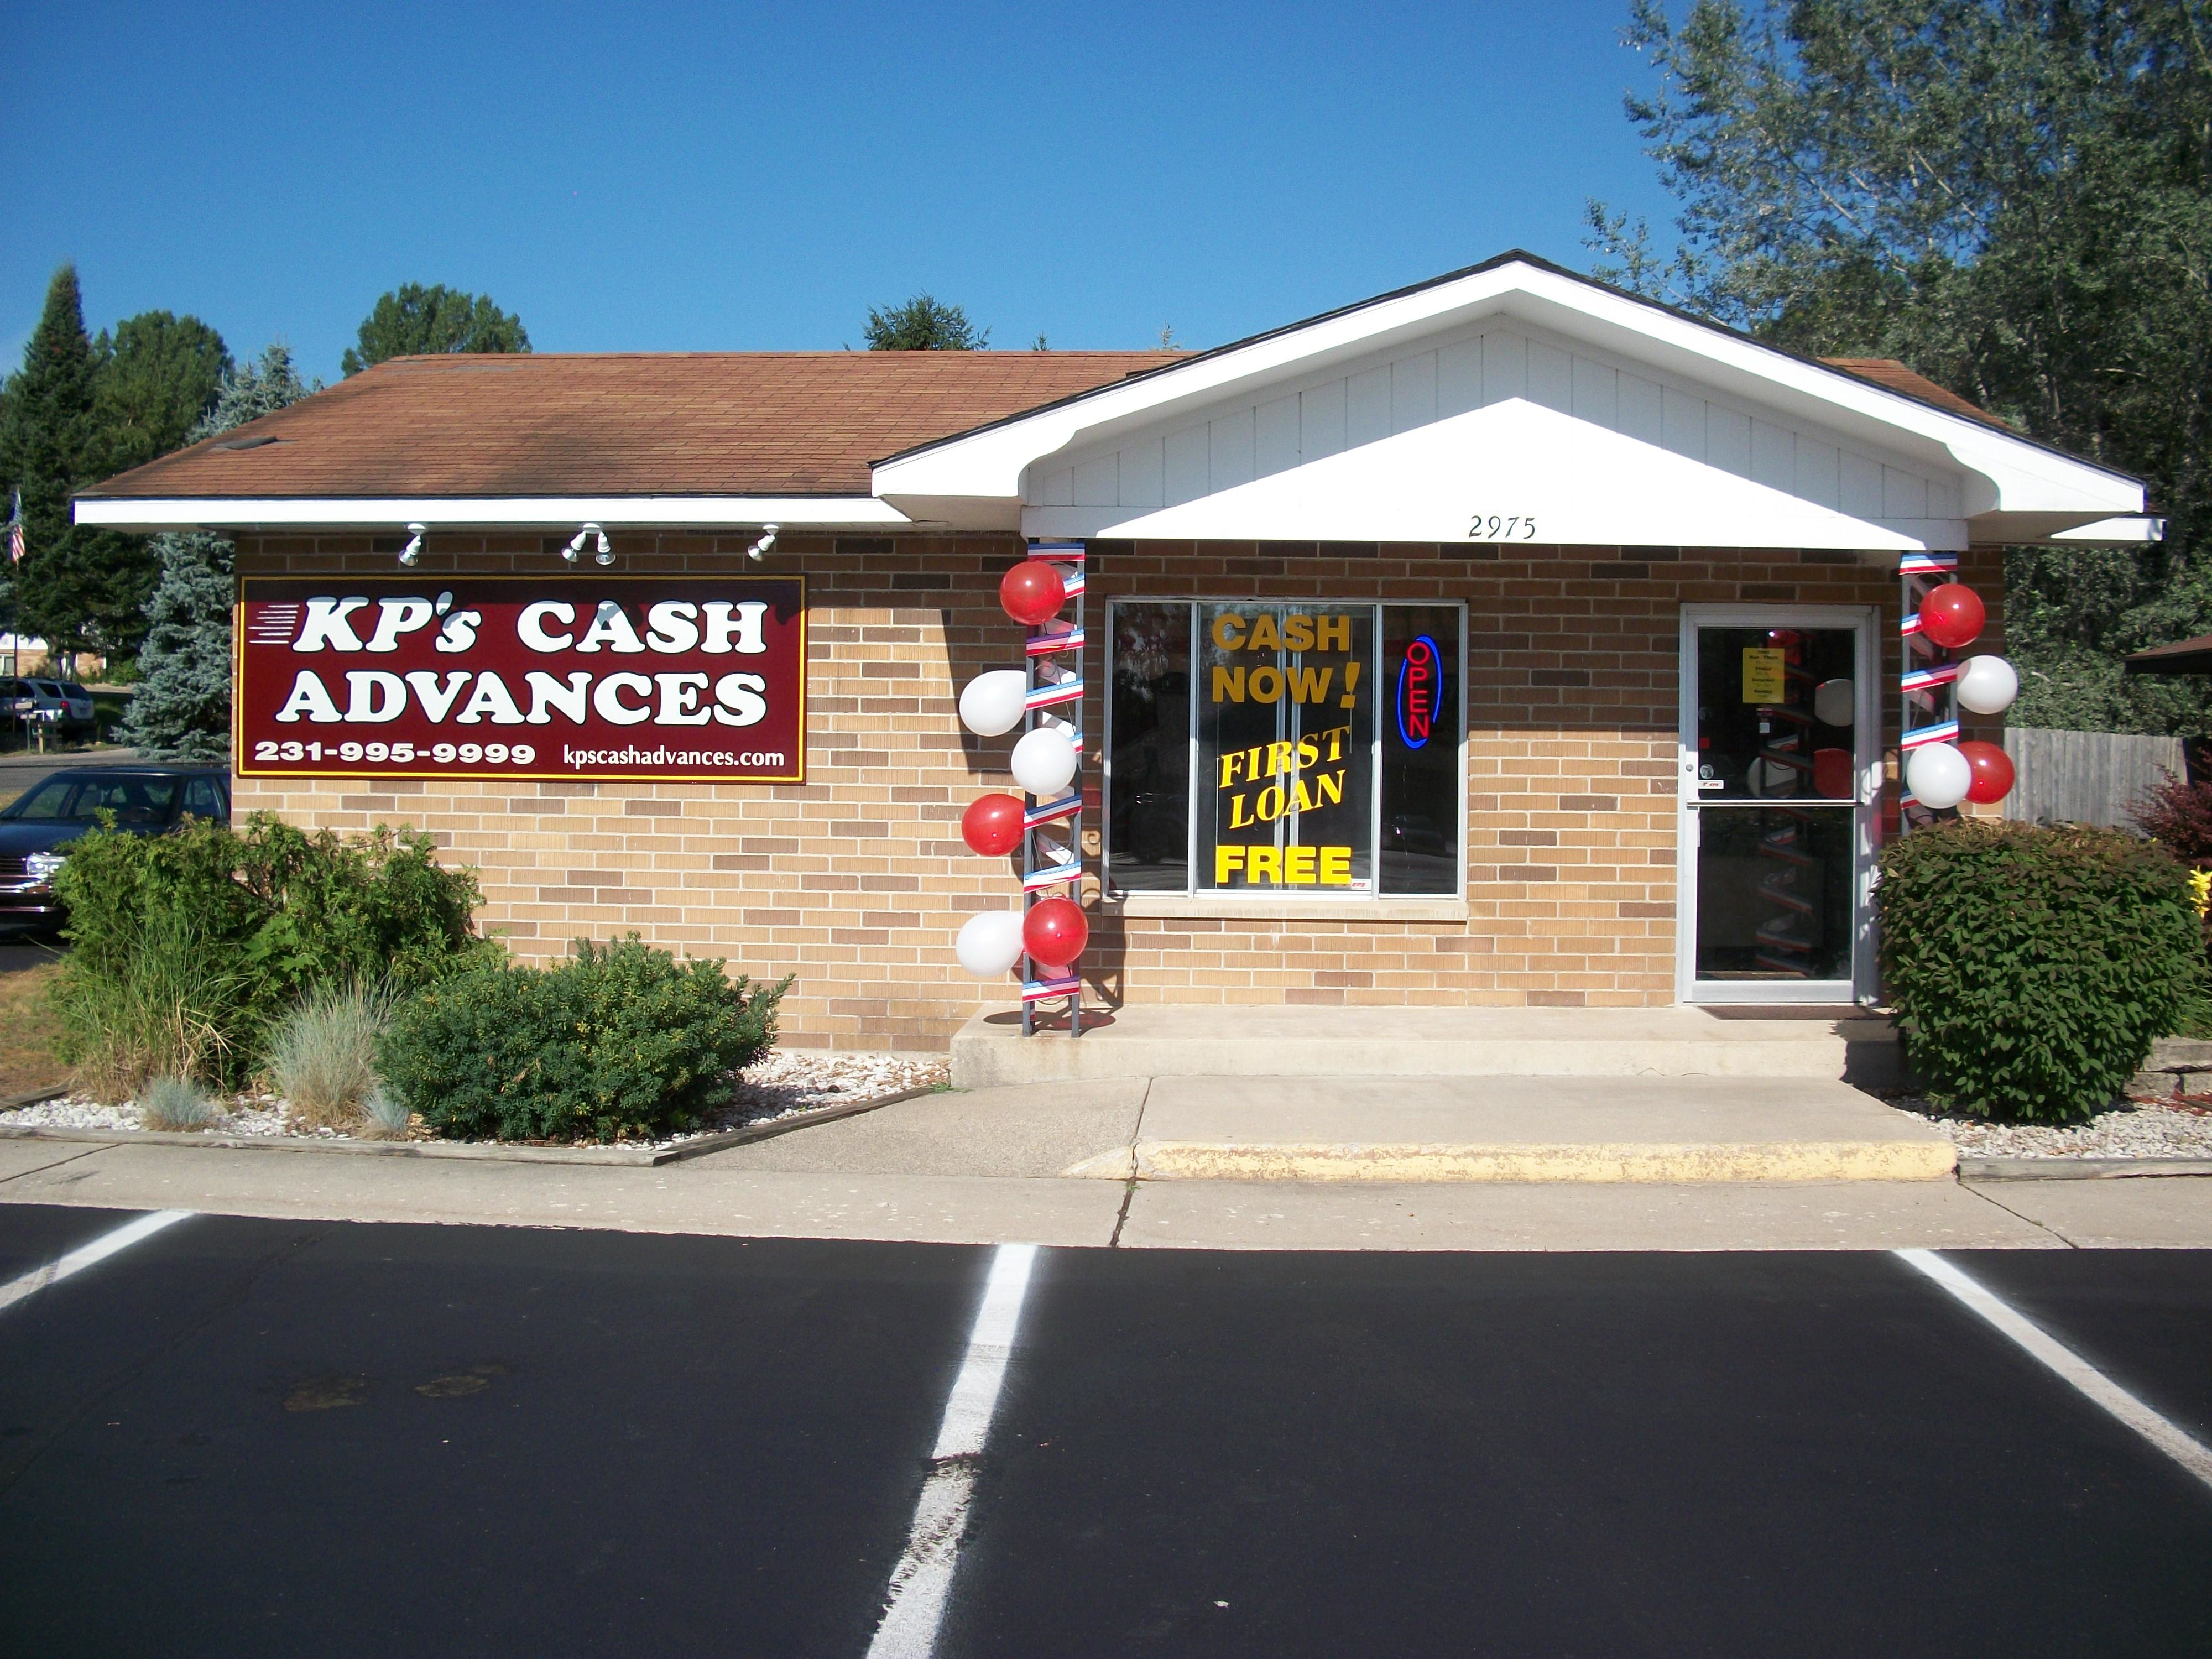 Payday loans in Traverse City, MI